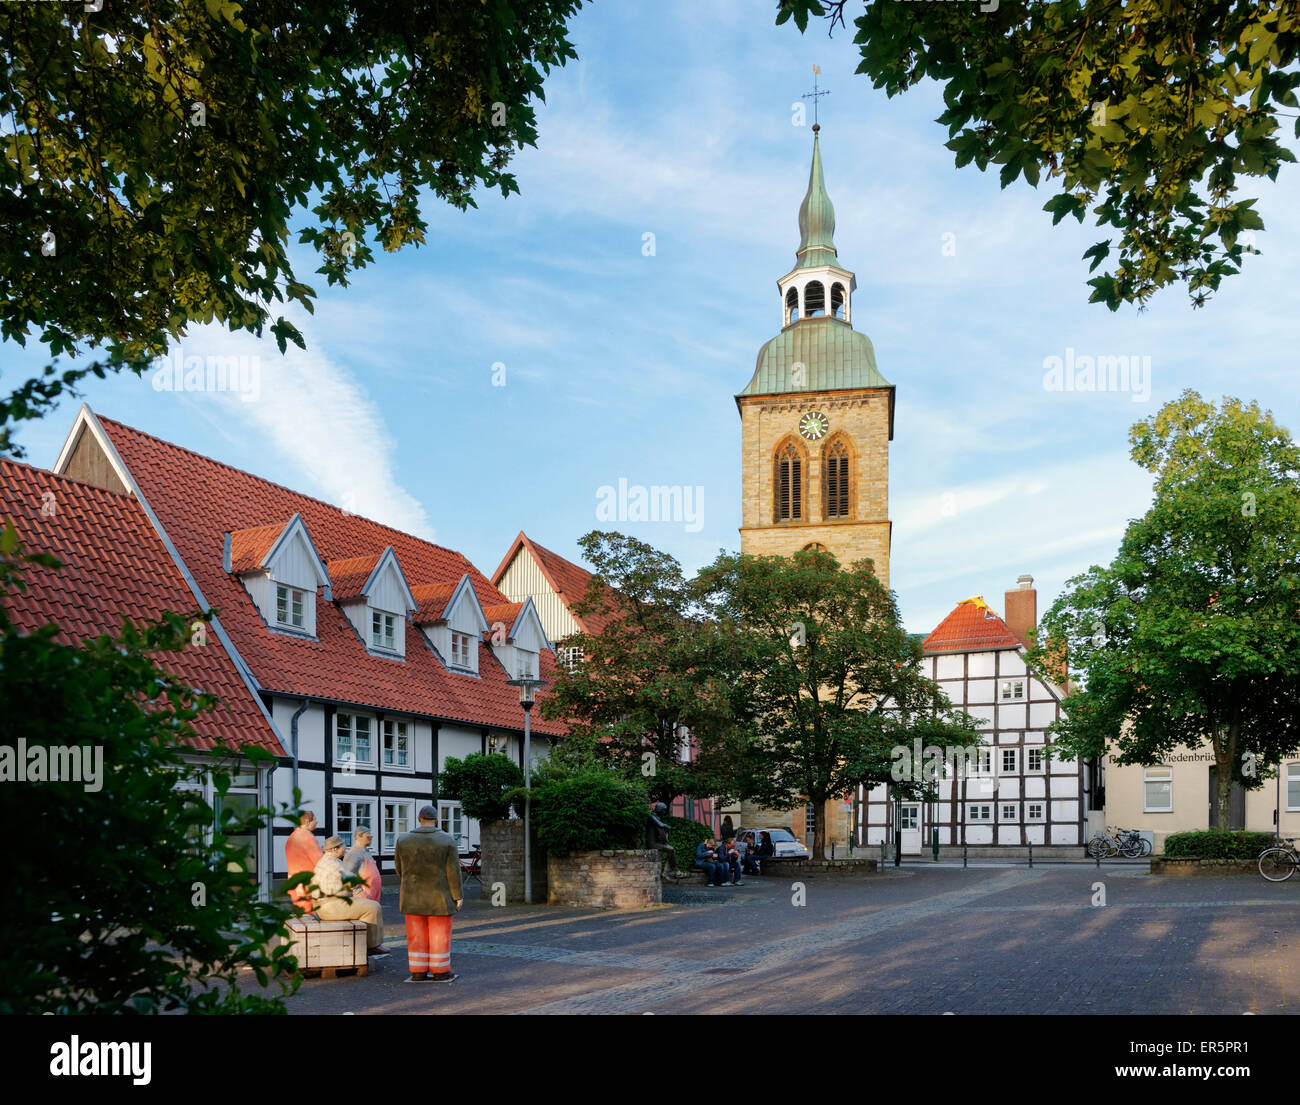 Konrad-Adenauer Square with Saint Aegidius church, Rheda-Wiedenbrueck, North Rhine-Westphalia, Germany - Stock Image